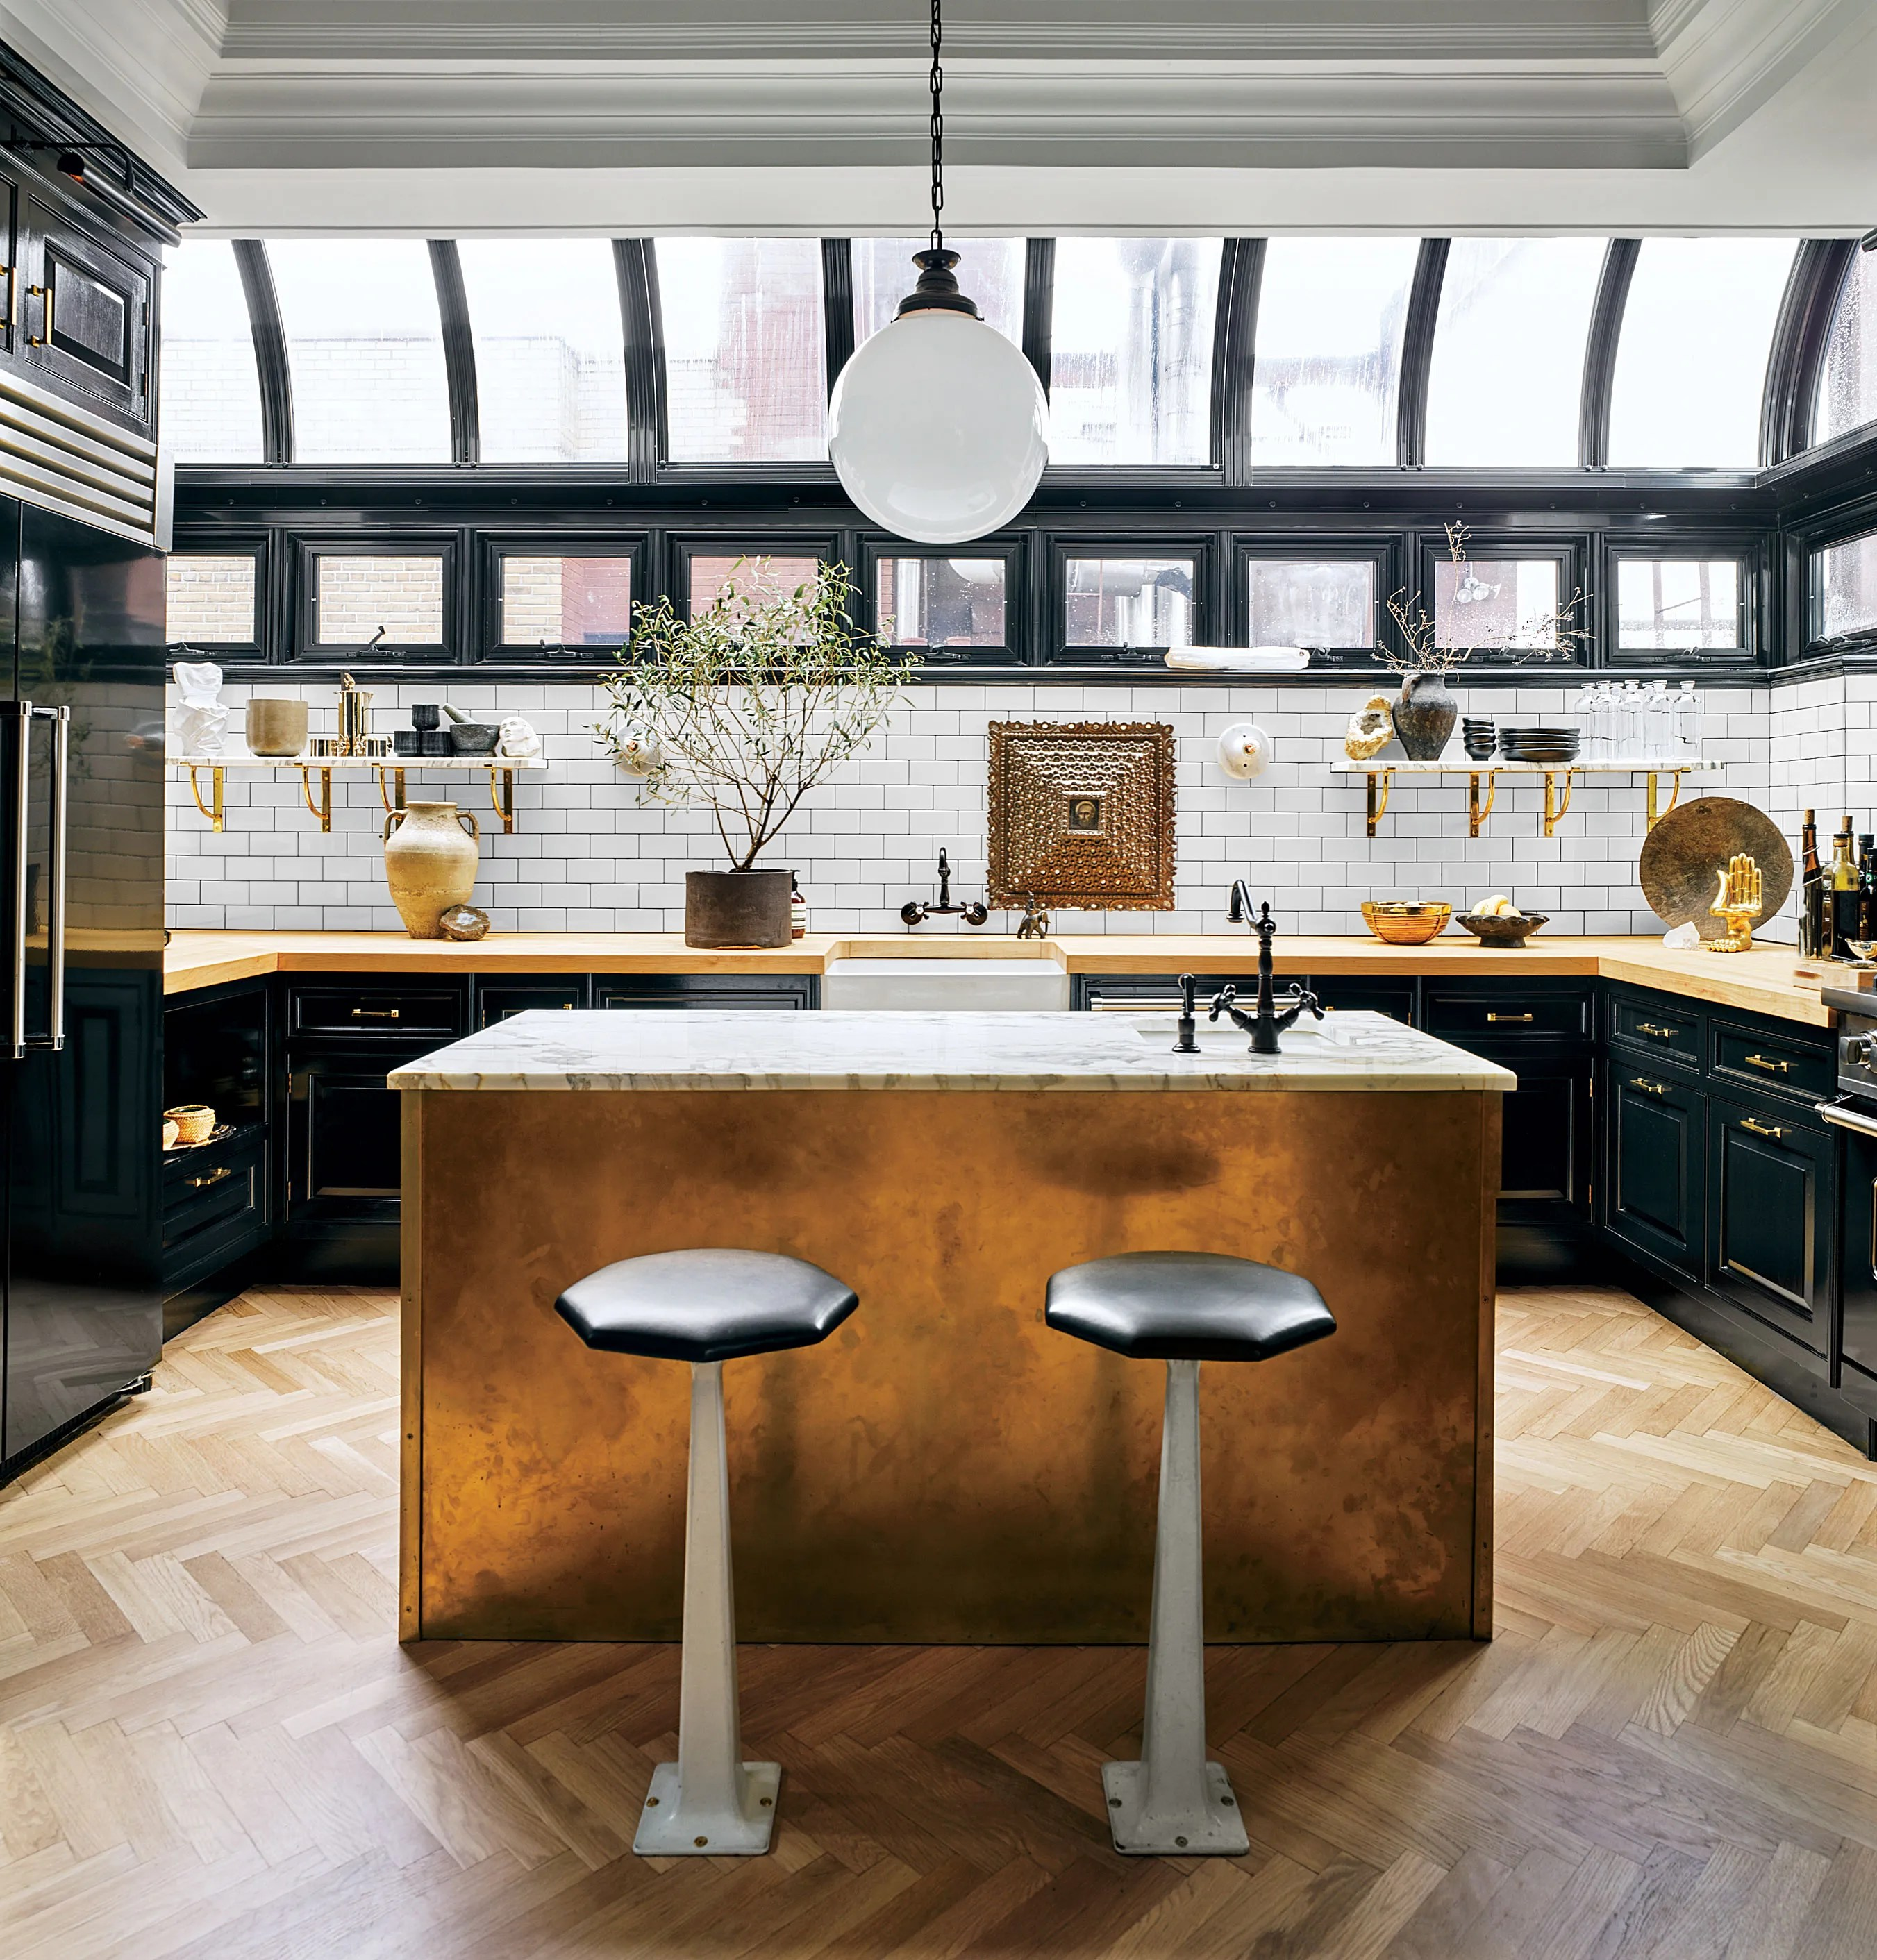 Black Design For Kitchen These 20 Black Kitchens Make A Stylish Impact Architectural Digest